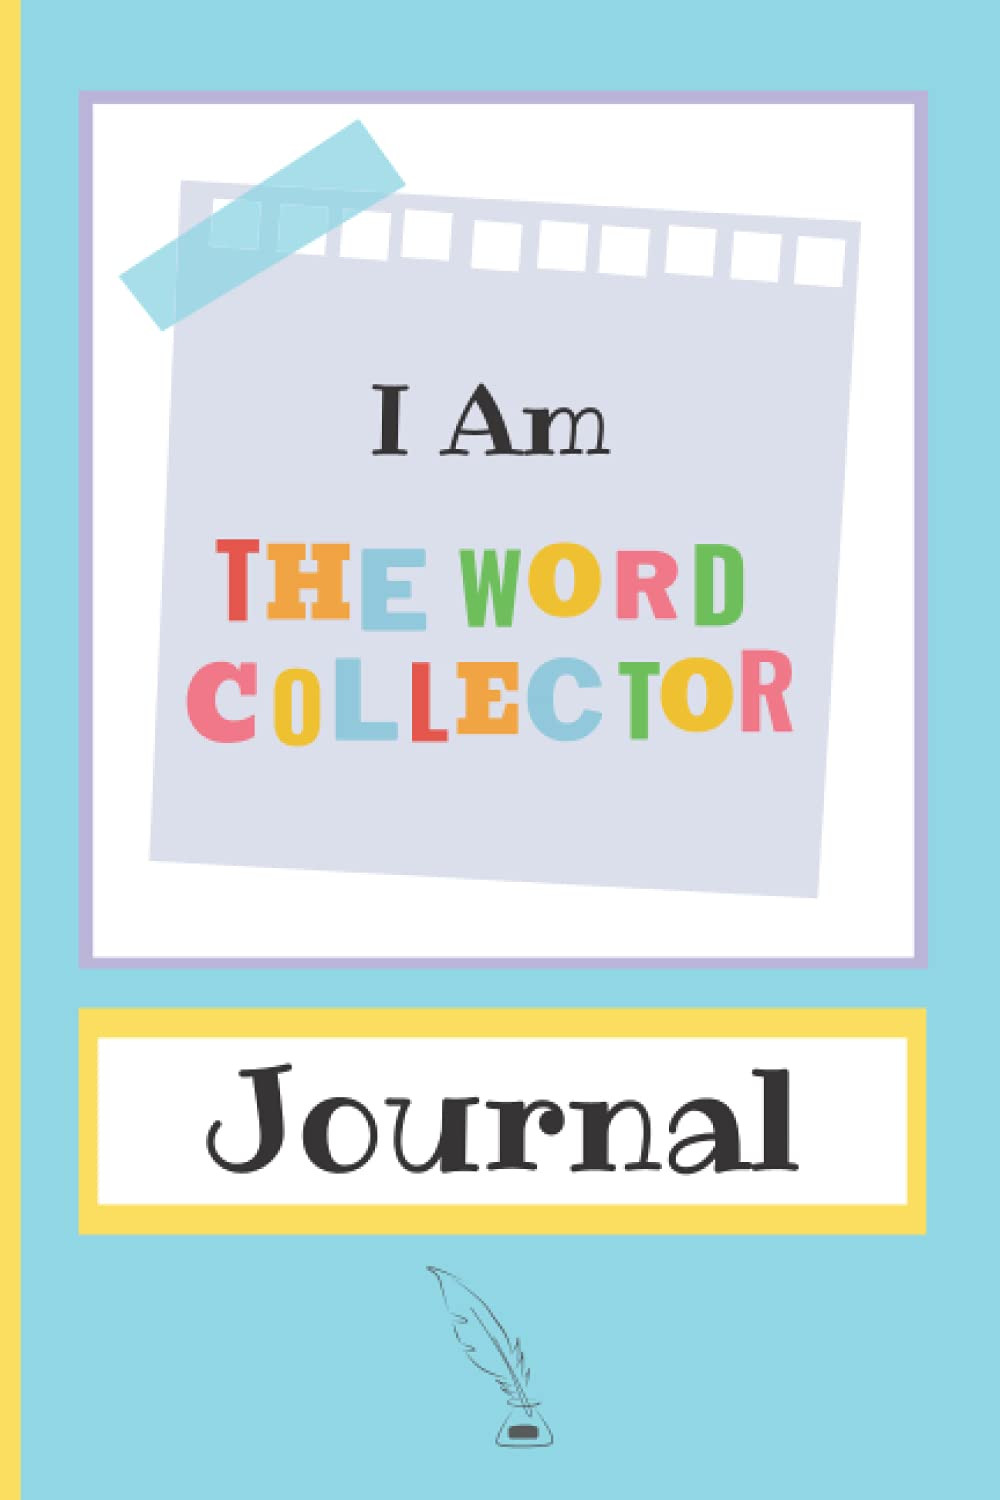 The Word Collector book. What Children Really Want. Notebook journal.